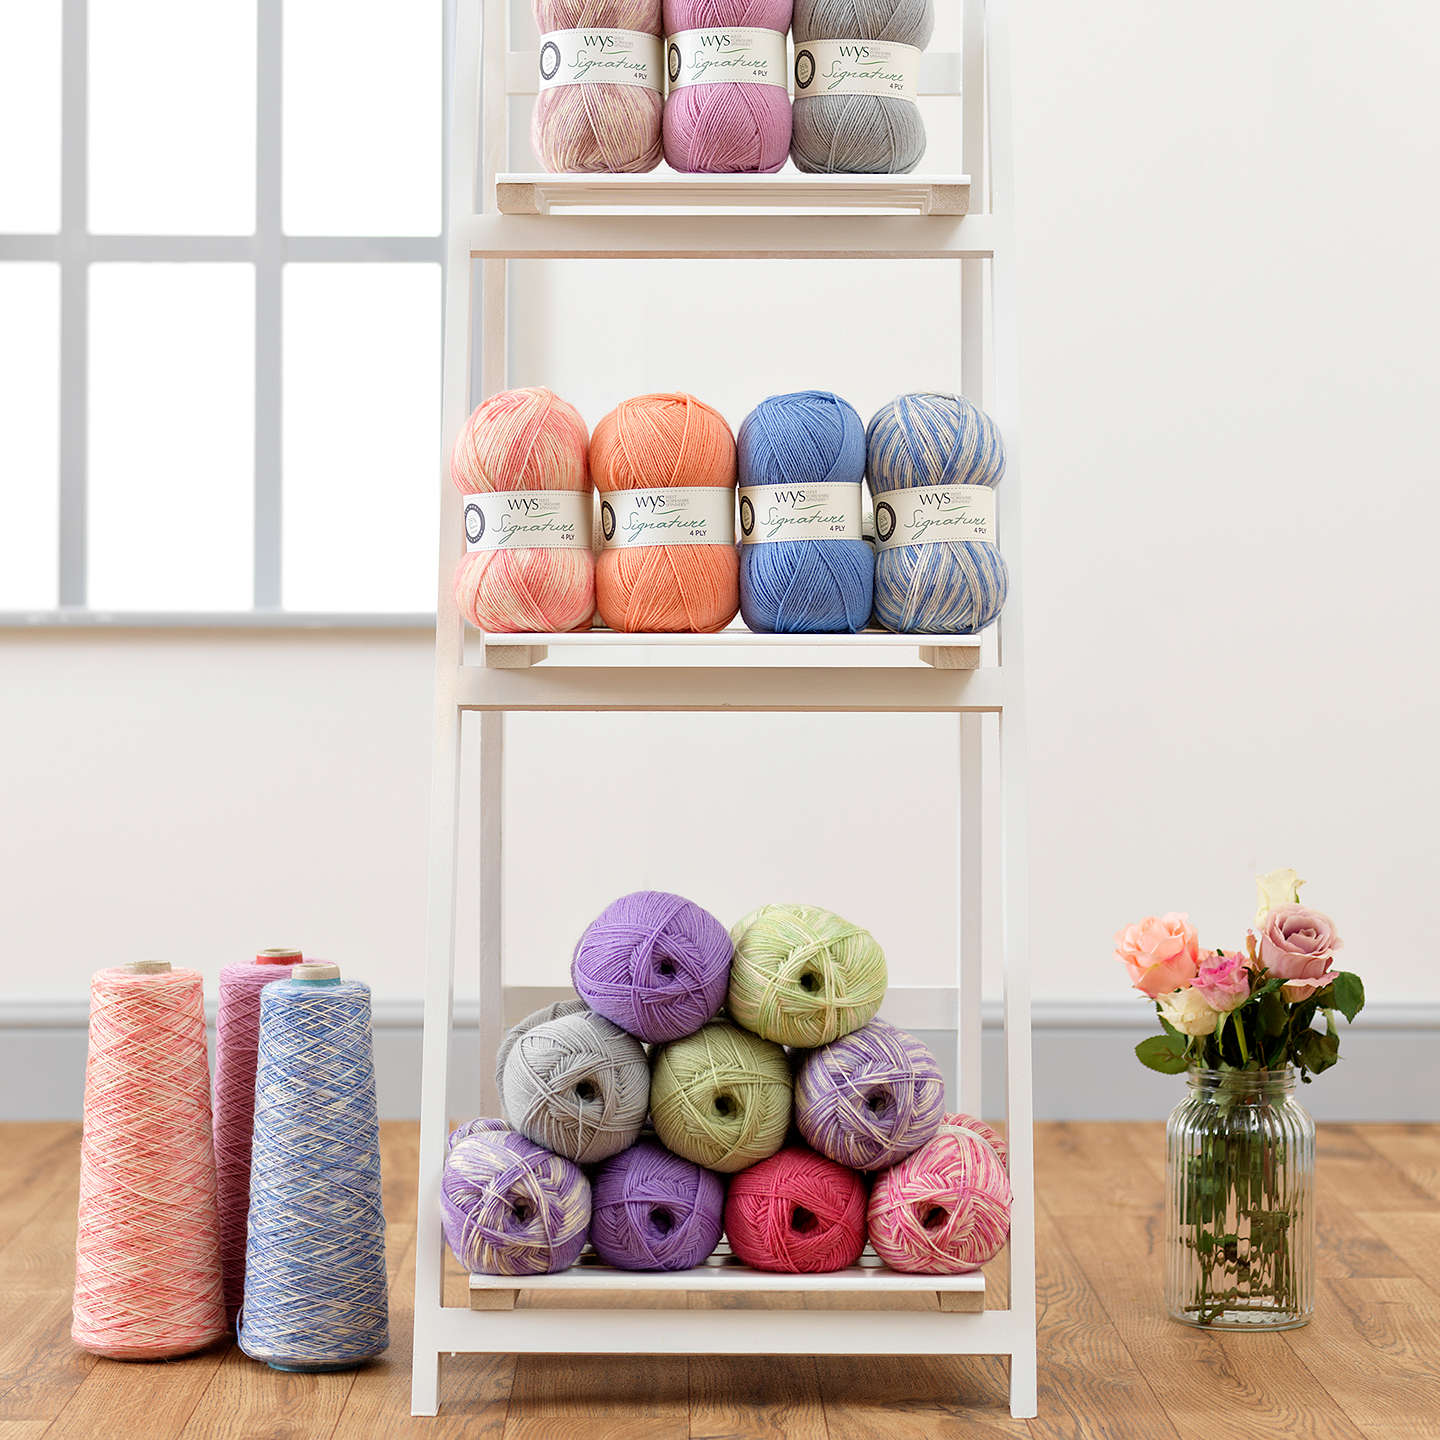 BuyWest Yorkshire Spinners Signature Florist 4 Ply Yarn, 100g, Foxglove Online at johnlewis.com